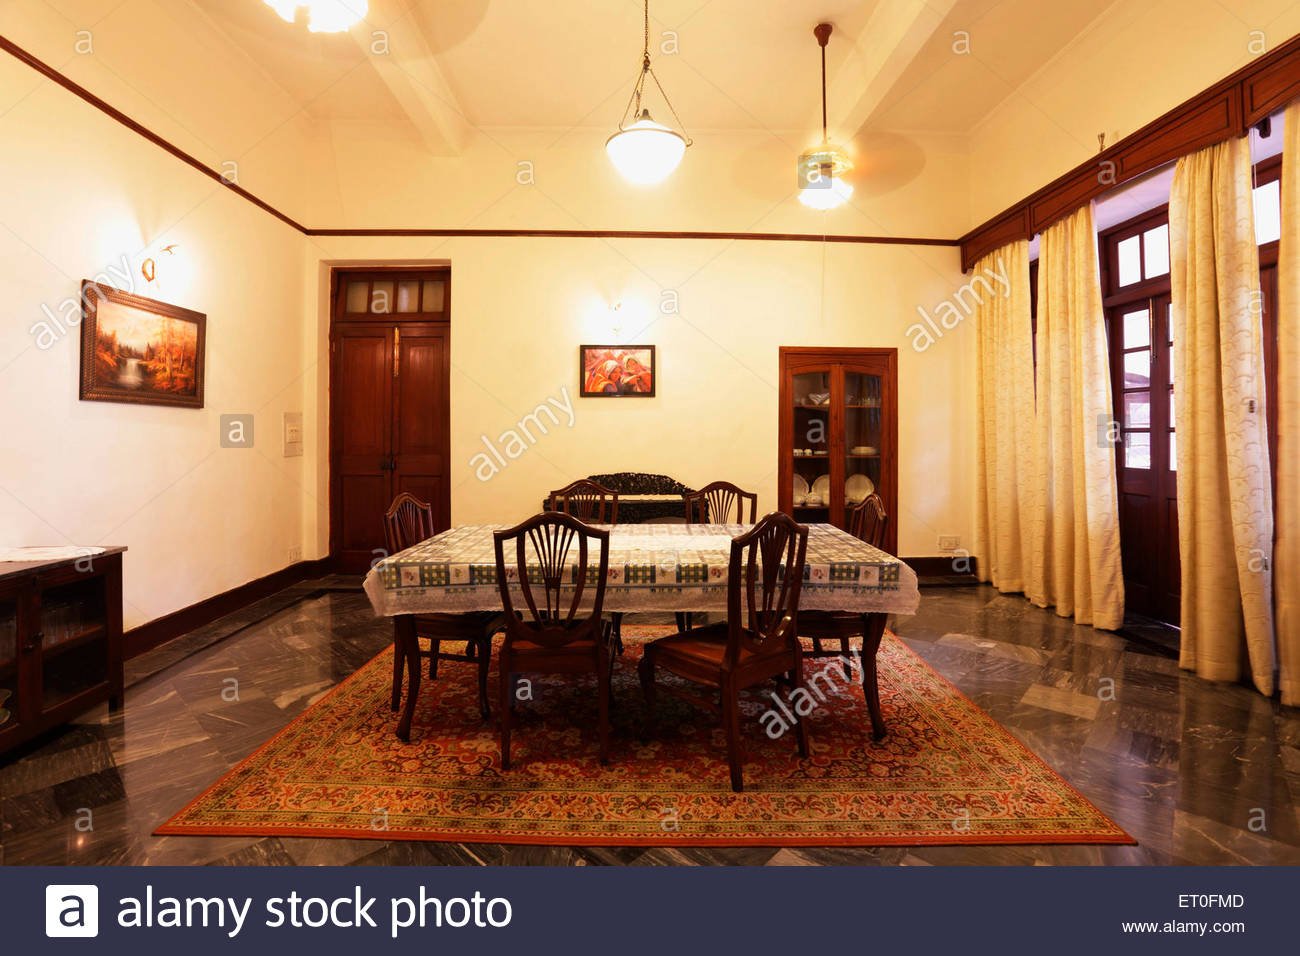 Bombarci Stock Photos  Bombarci Stock Images Alamy - Dining room manager